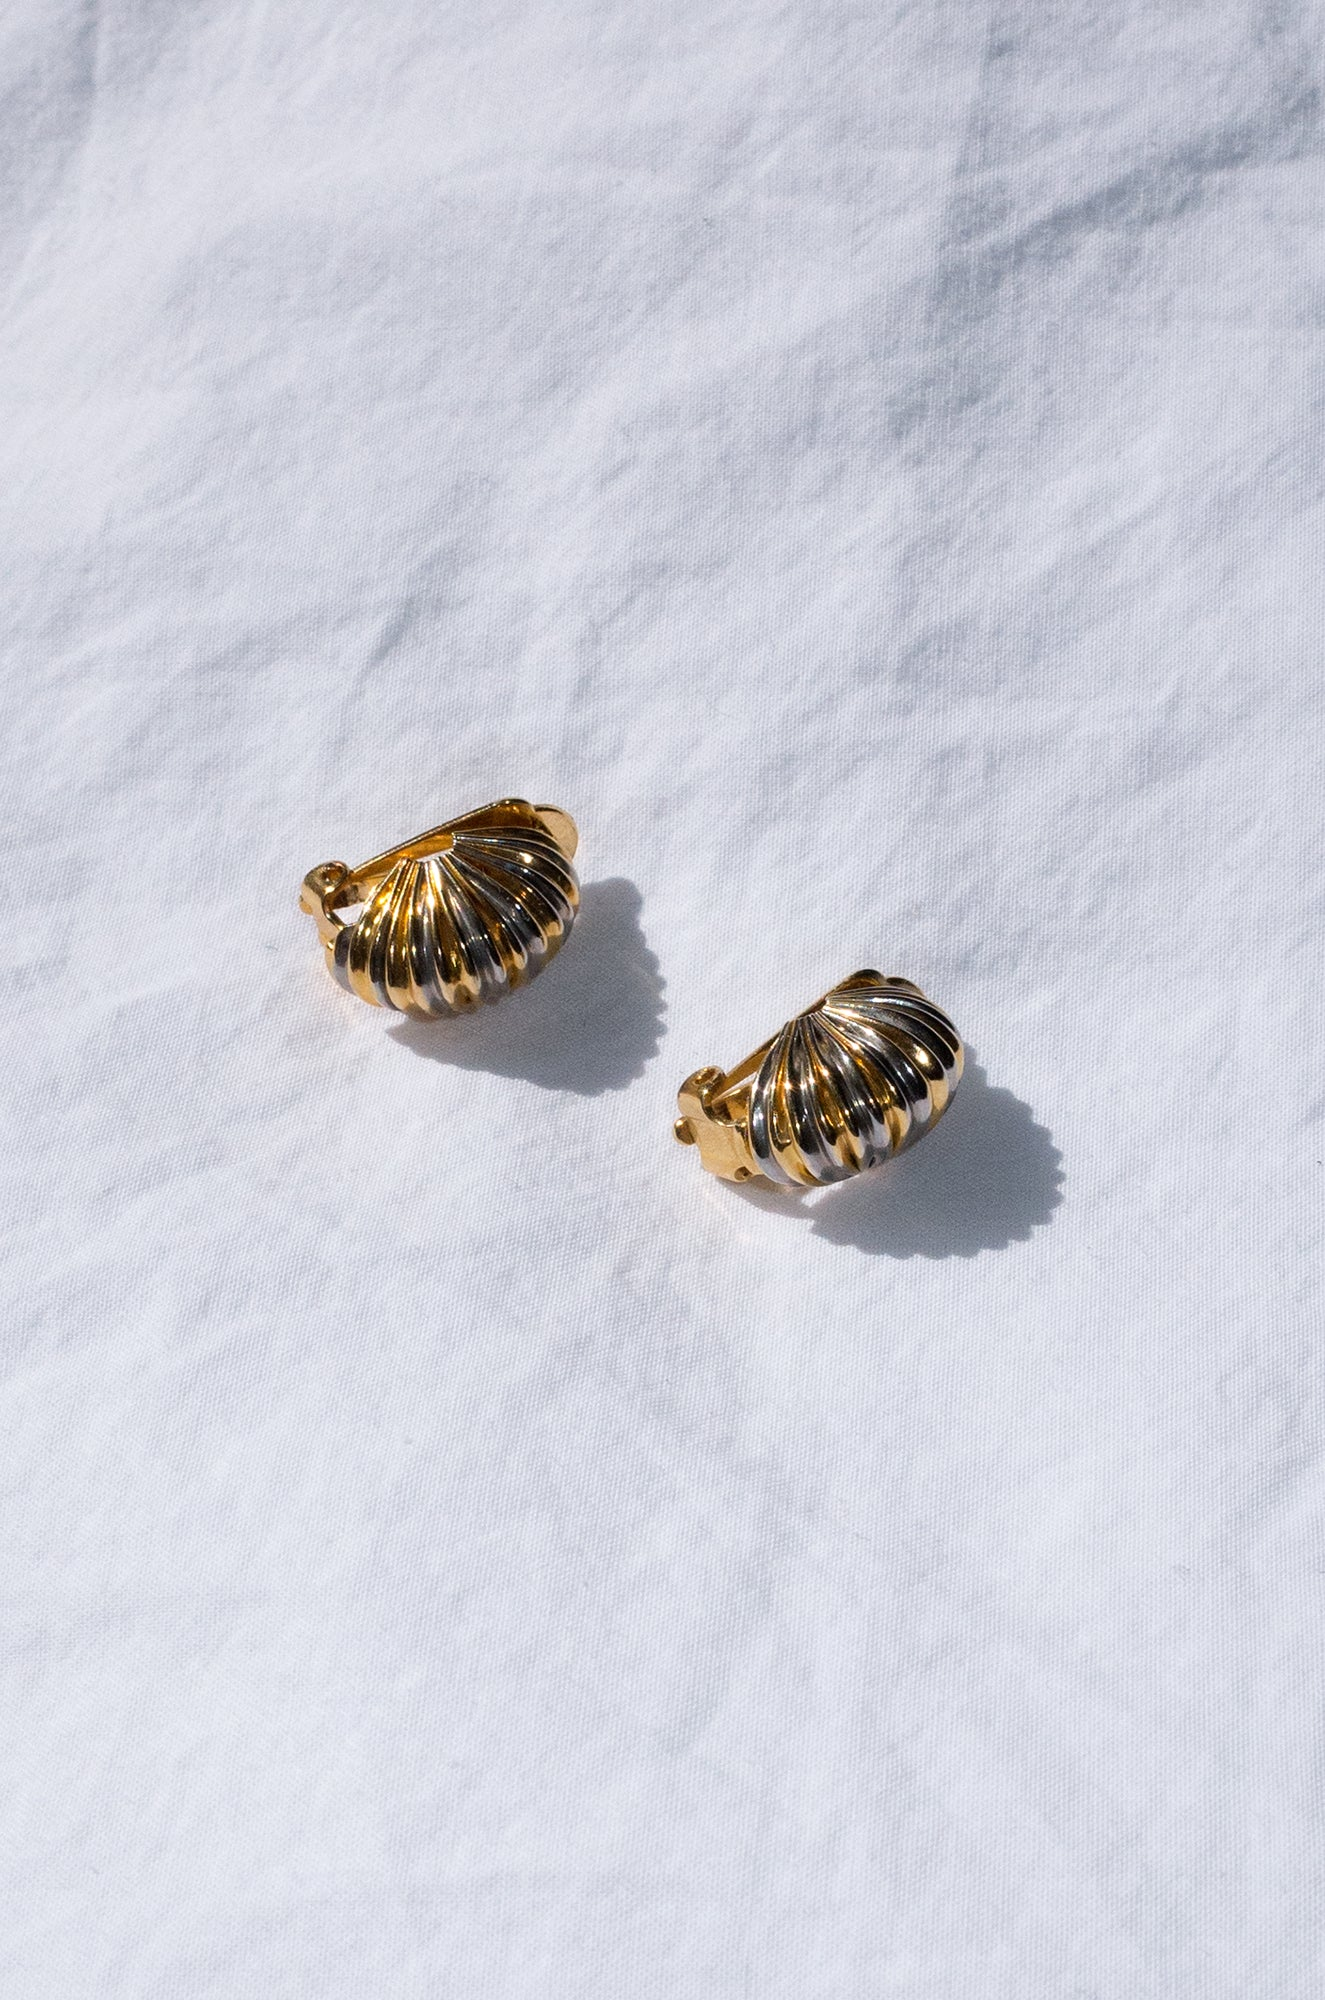 Vintage 1980s gold and silver-tone ridged earrings